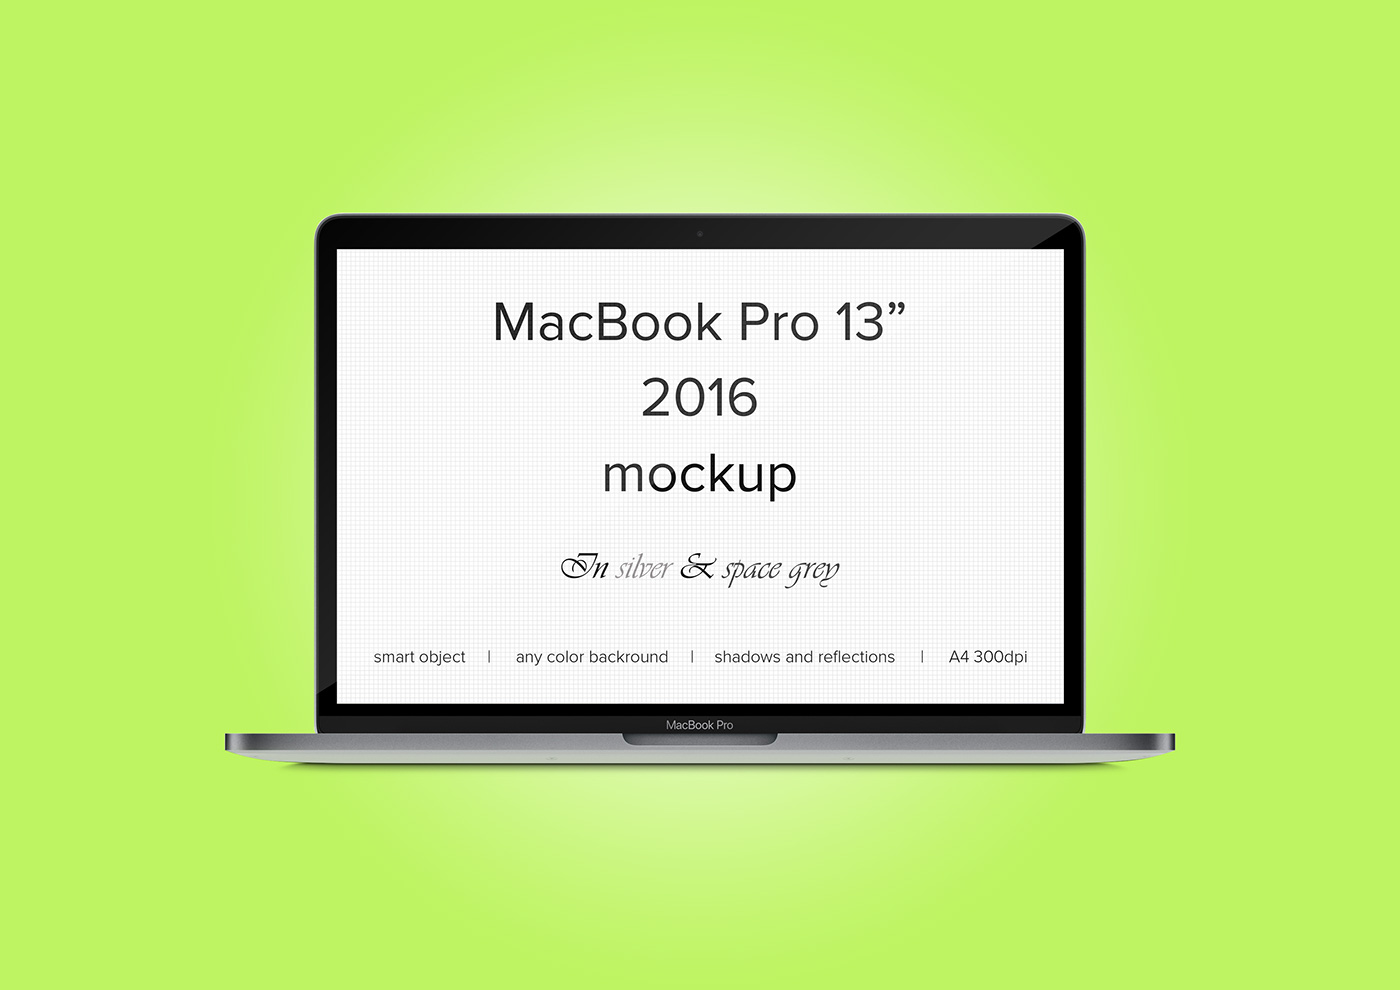 PSD. MacBook Pro 2016 mockup. Silver and space grey. on Behance